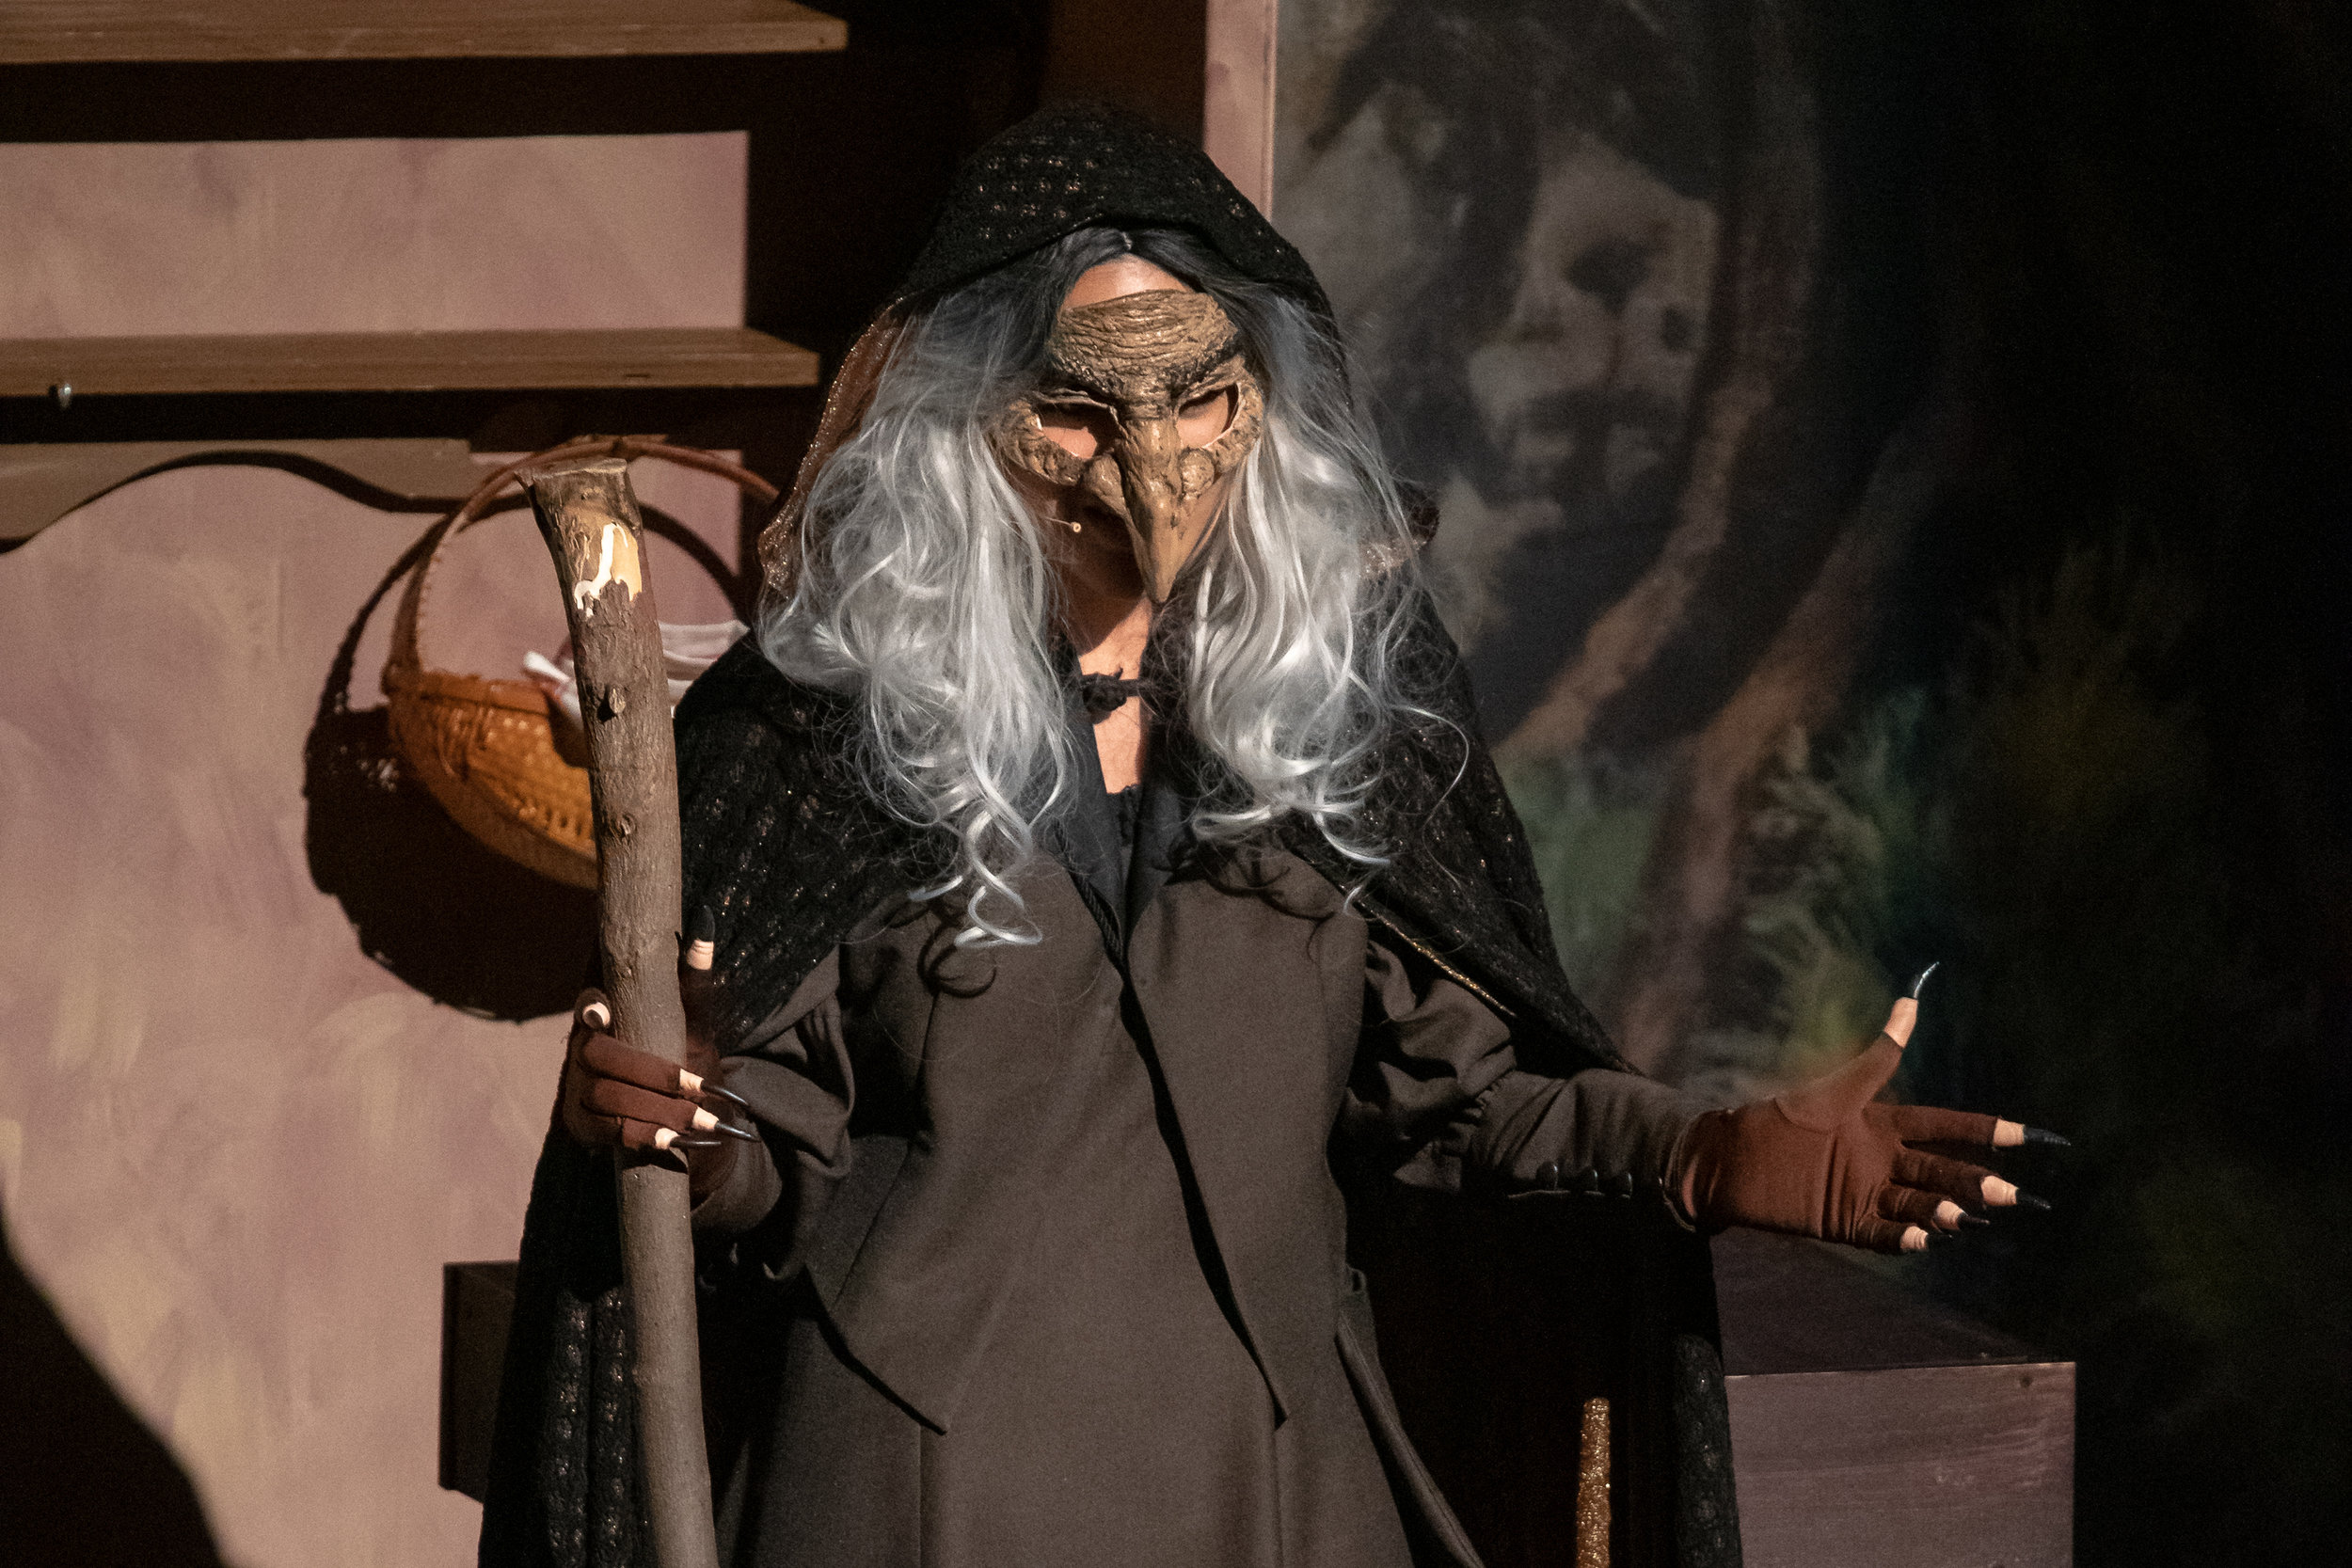 The Witch (Into The Woods)